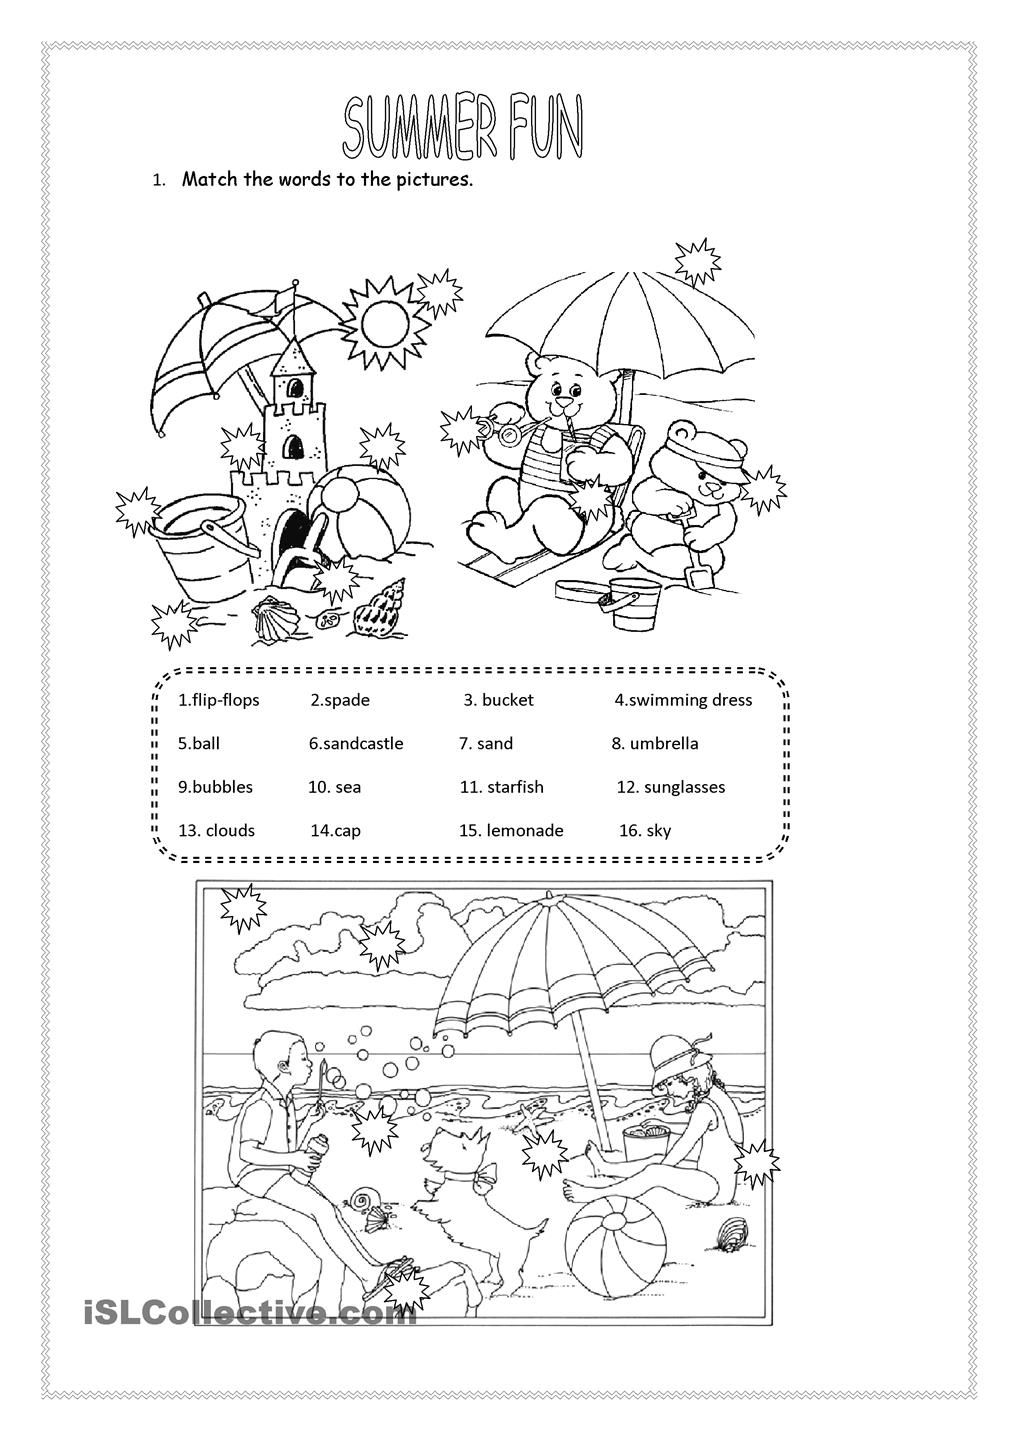 Summer Fun With Images Summer Worksheets Summer Fun Fun